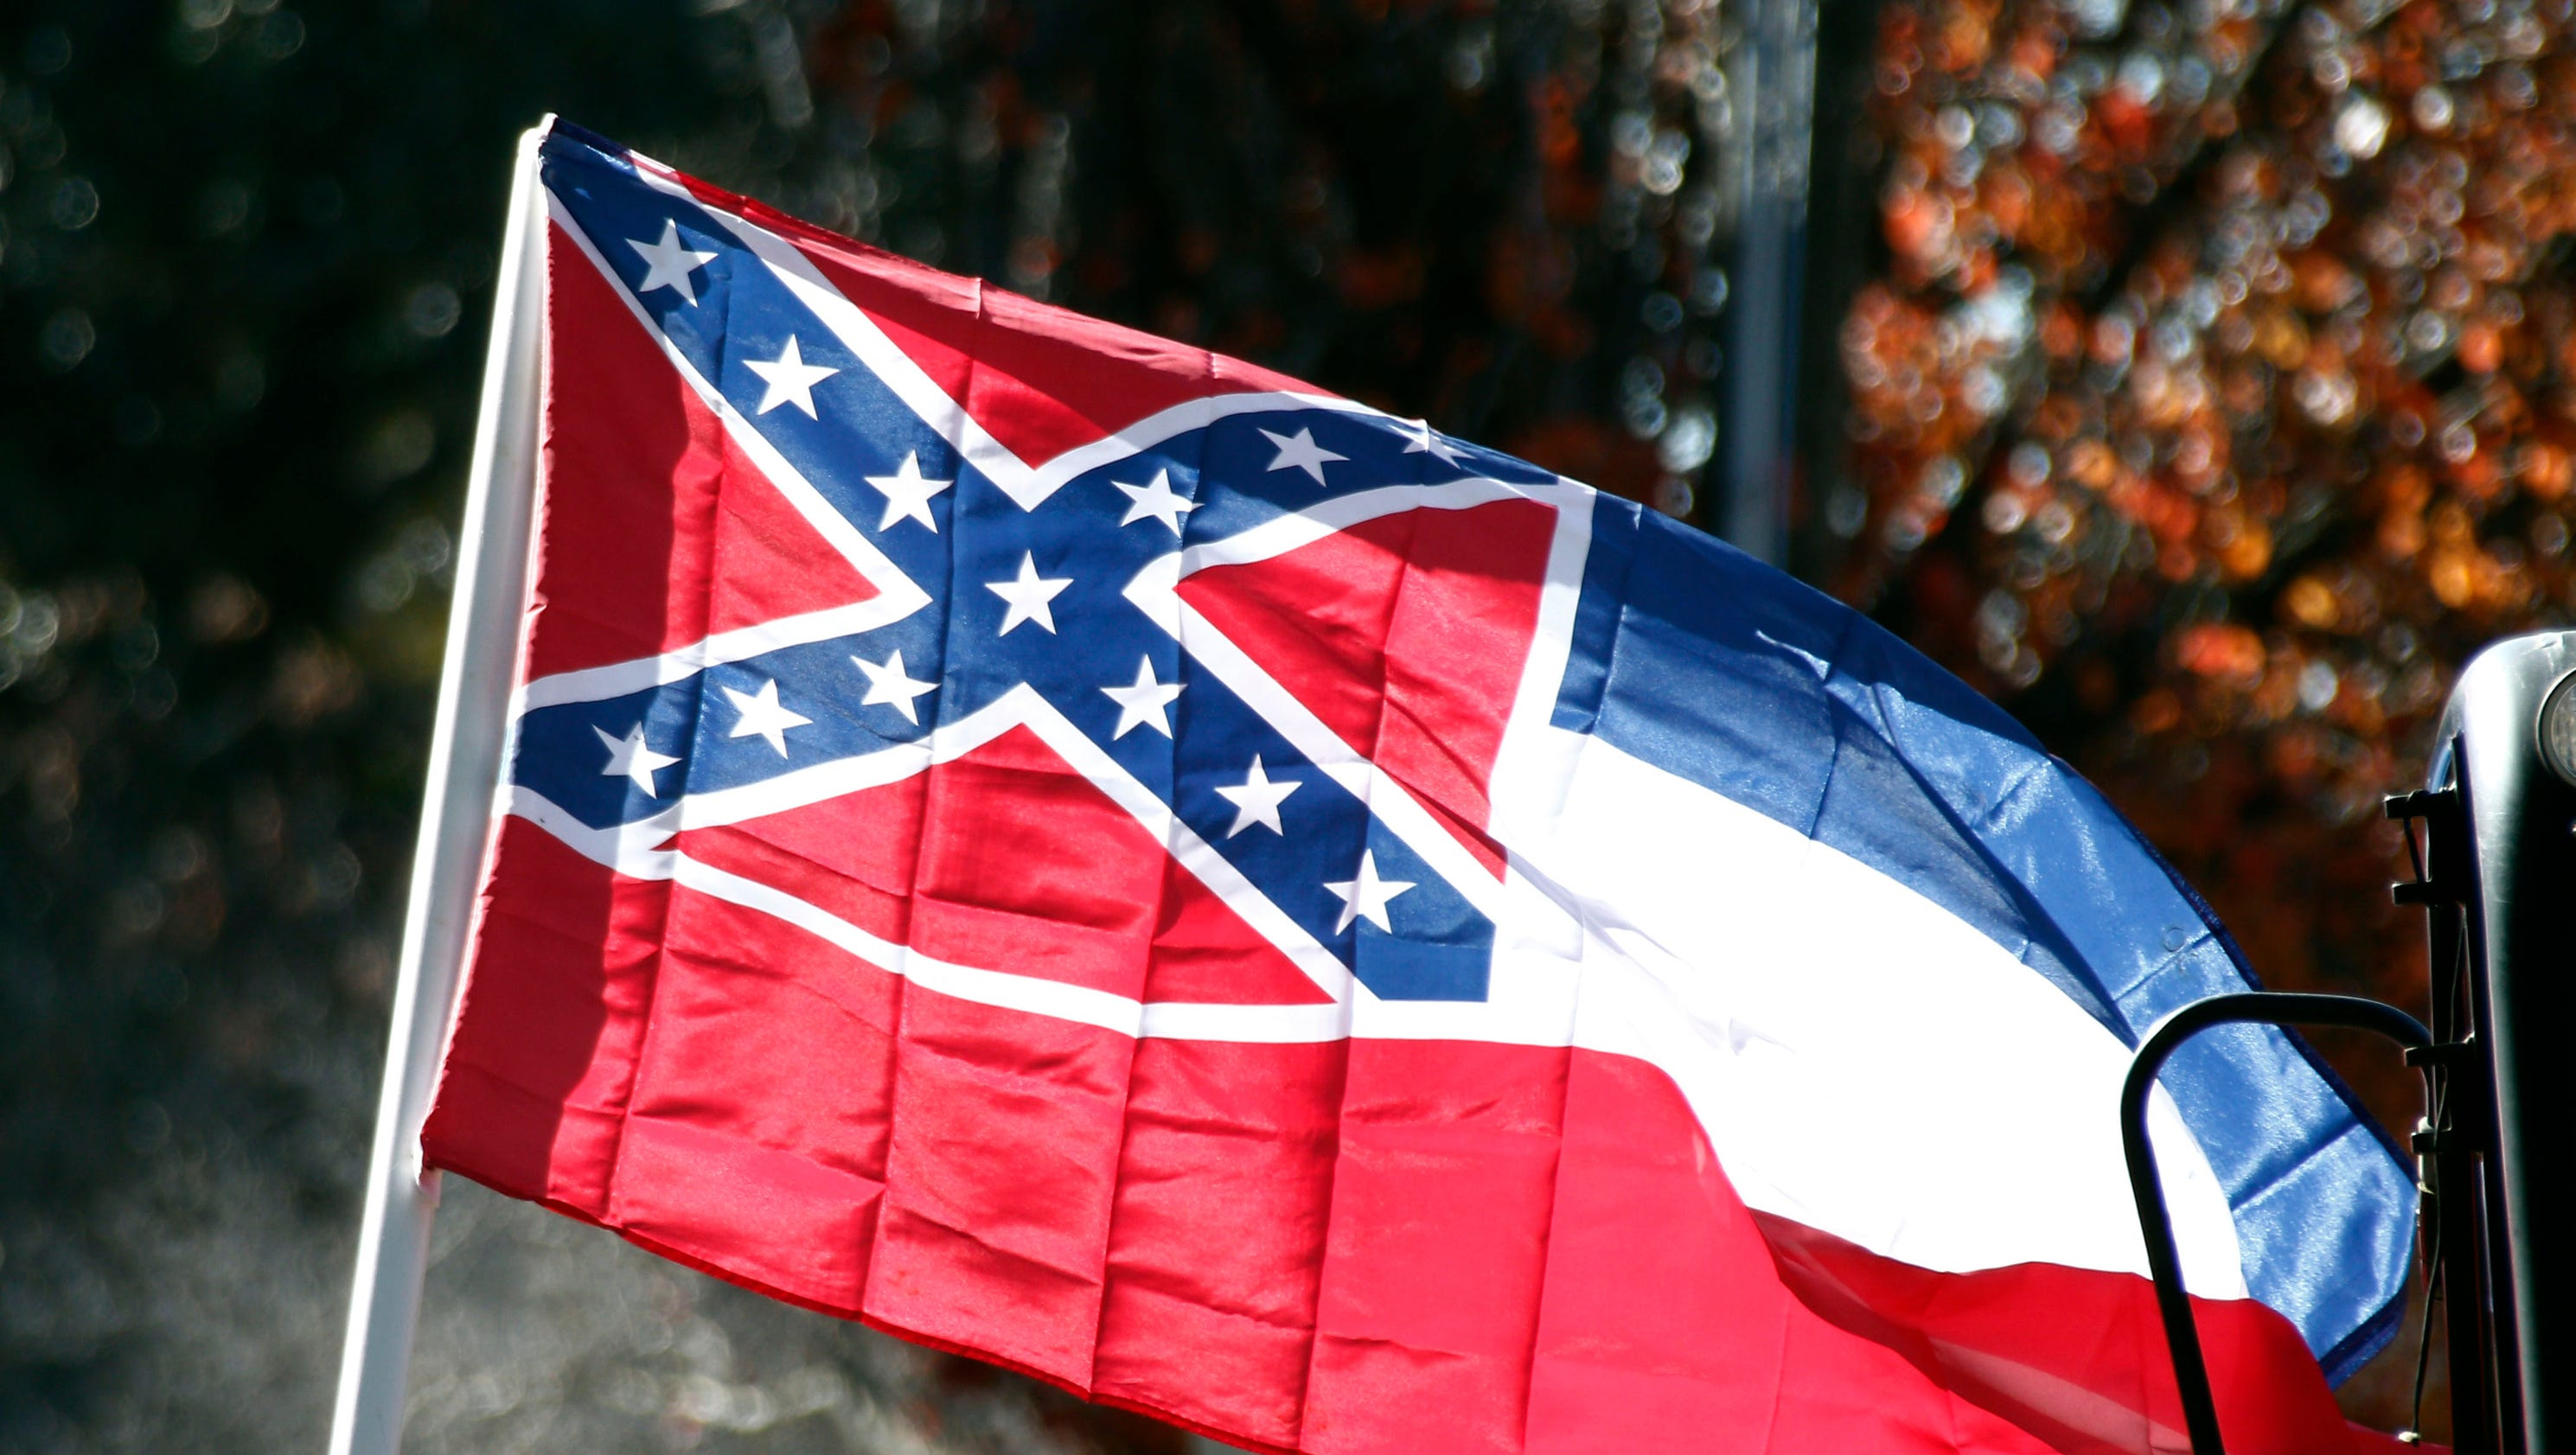 Mississippi's choice: Confederate past or new flag and future